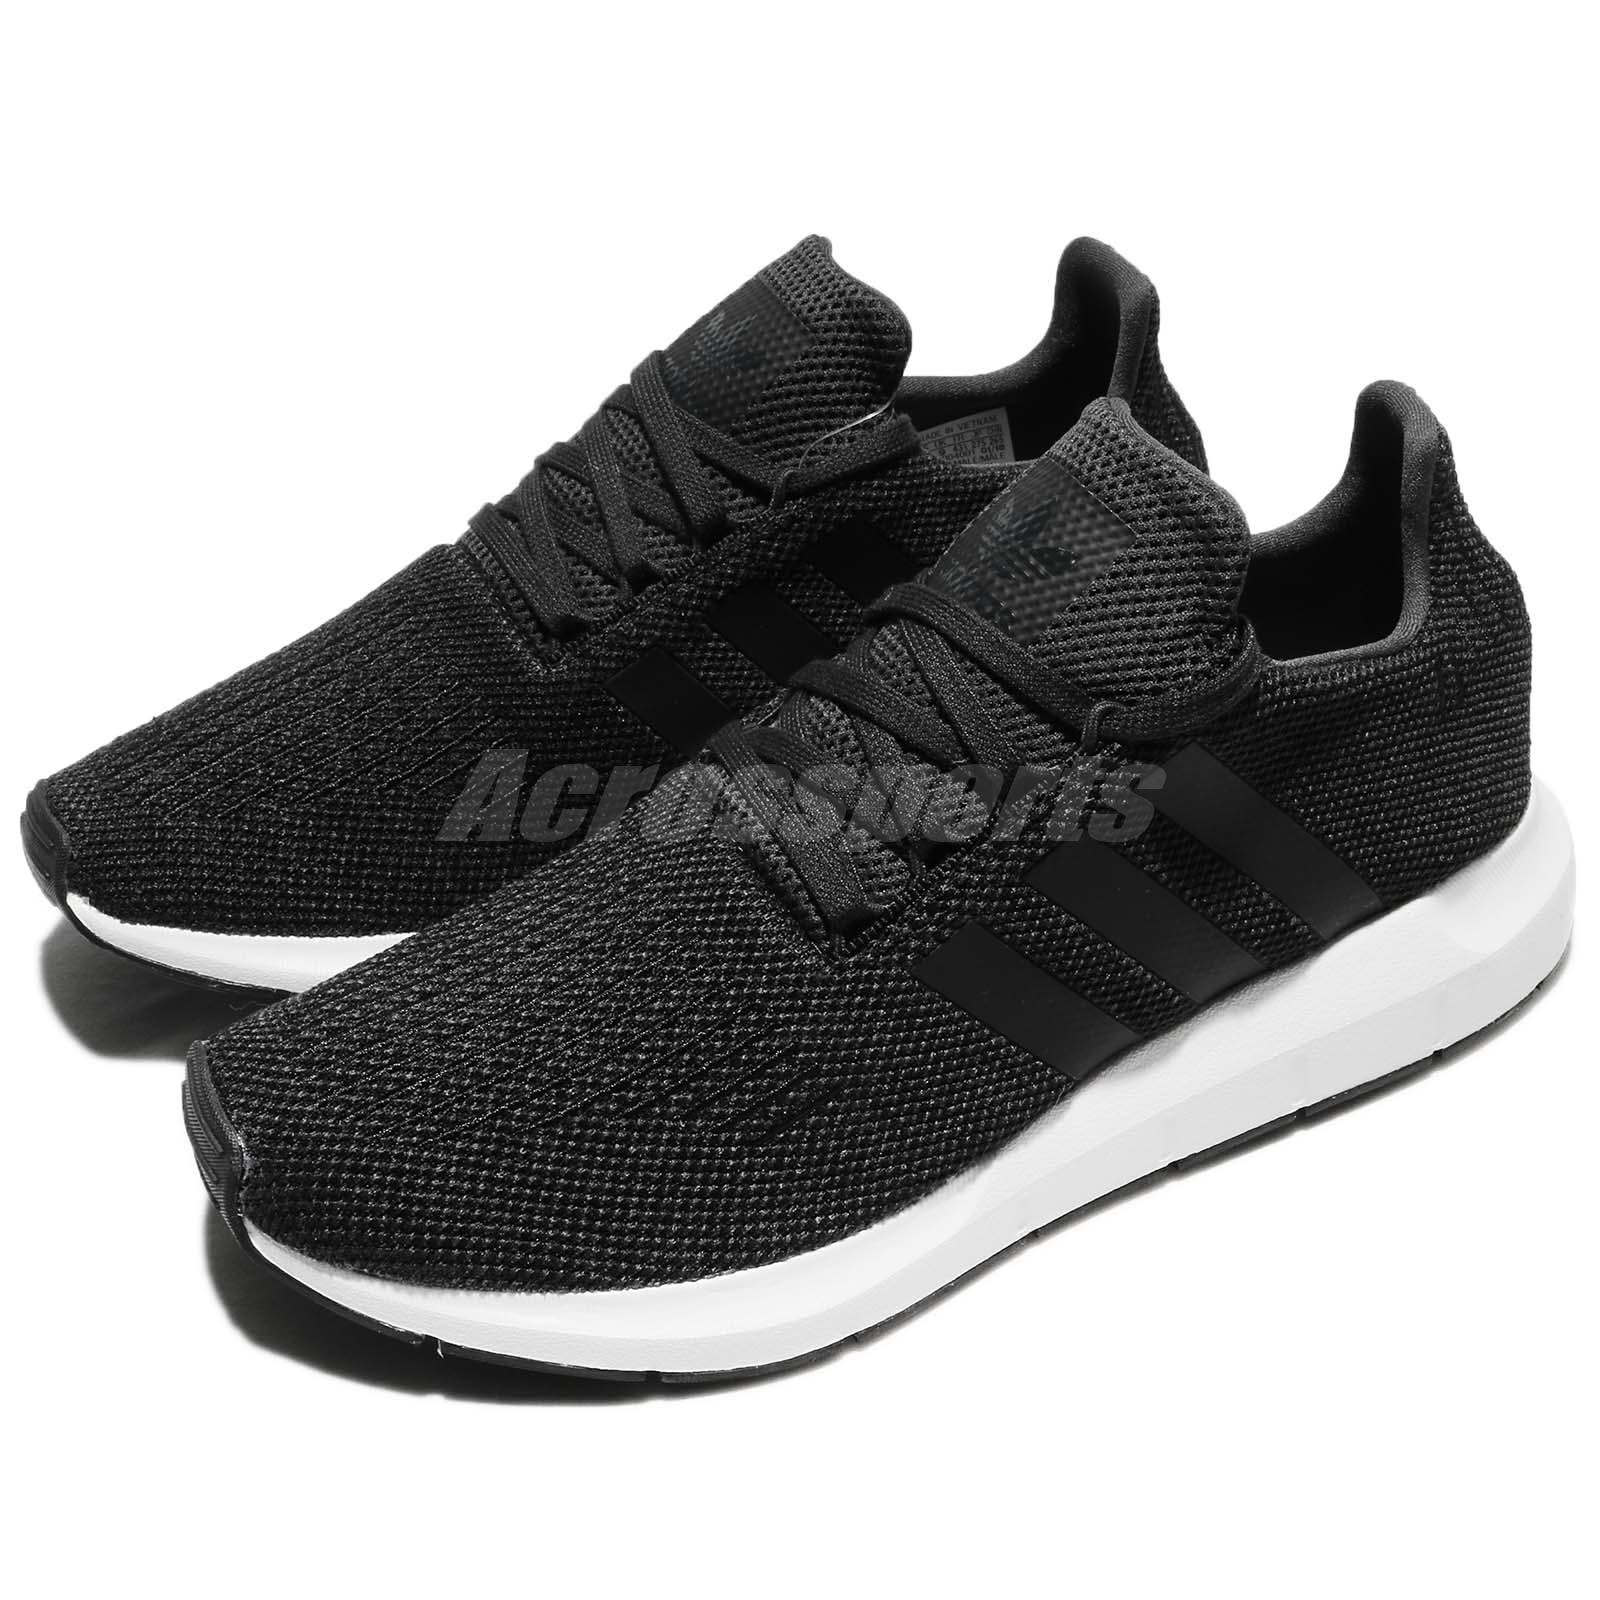 new style 8ab59 b15bf Details about adidas Originals Swift Run Carbon Black Men Running Shoes  Sneakers CQ2114